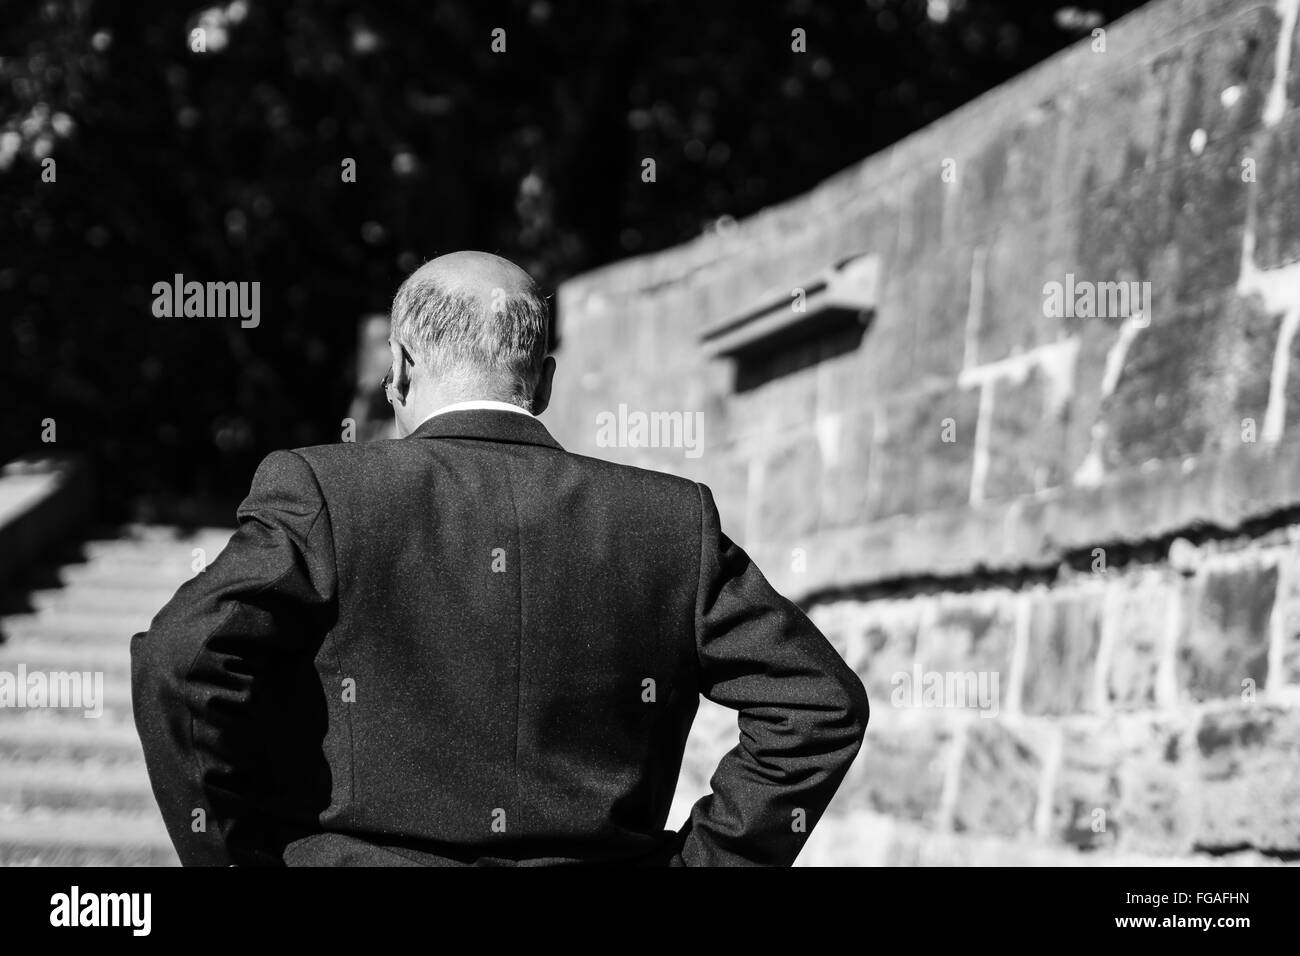 Rear View Of Man In Formalwear Standing Outdoors - Stock Image